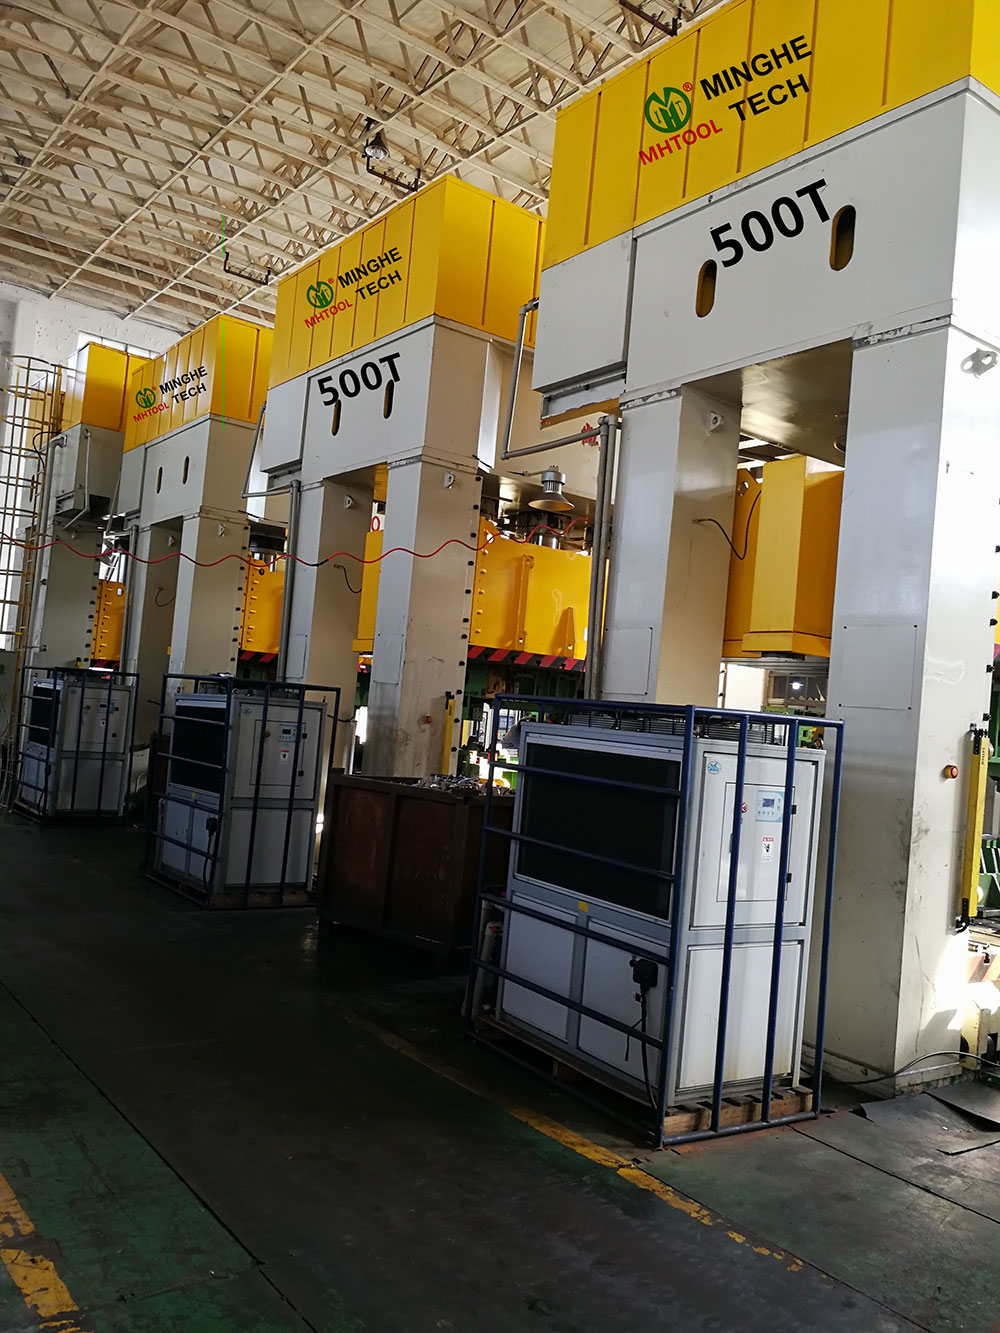 023-MingHe-Four-Column-Gantry-Stamping-Drawing-Hydraulic-Press-1-(4)500T